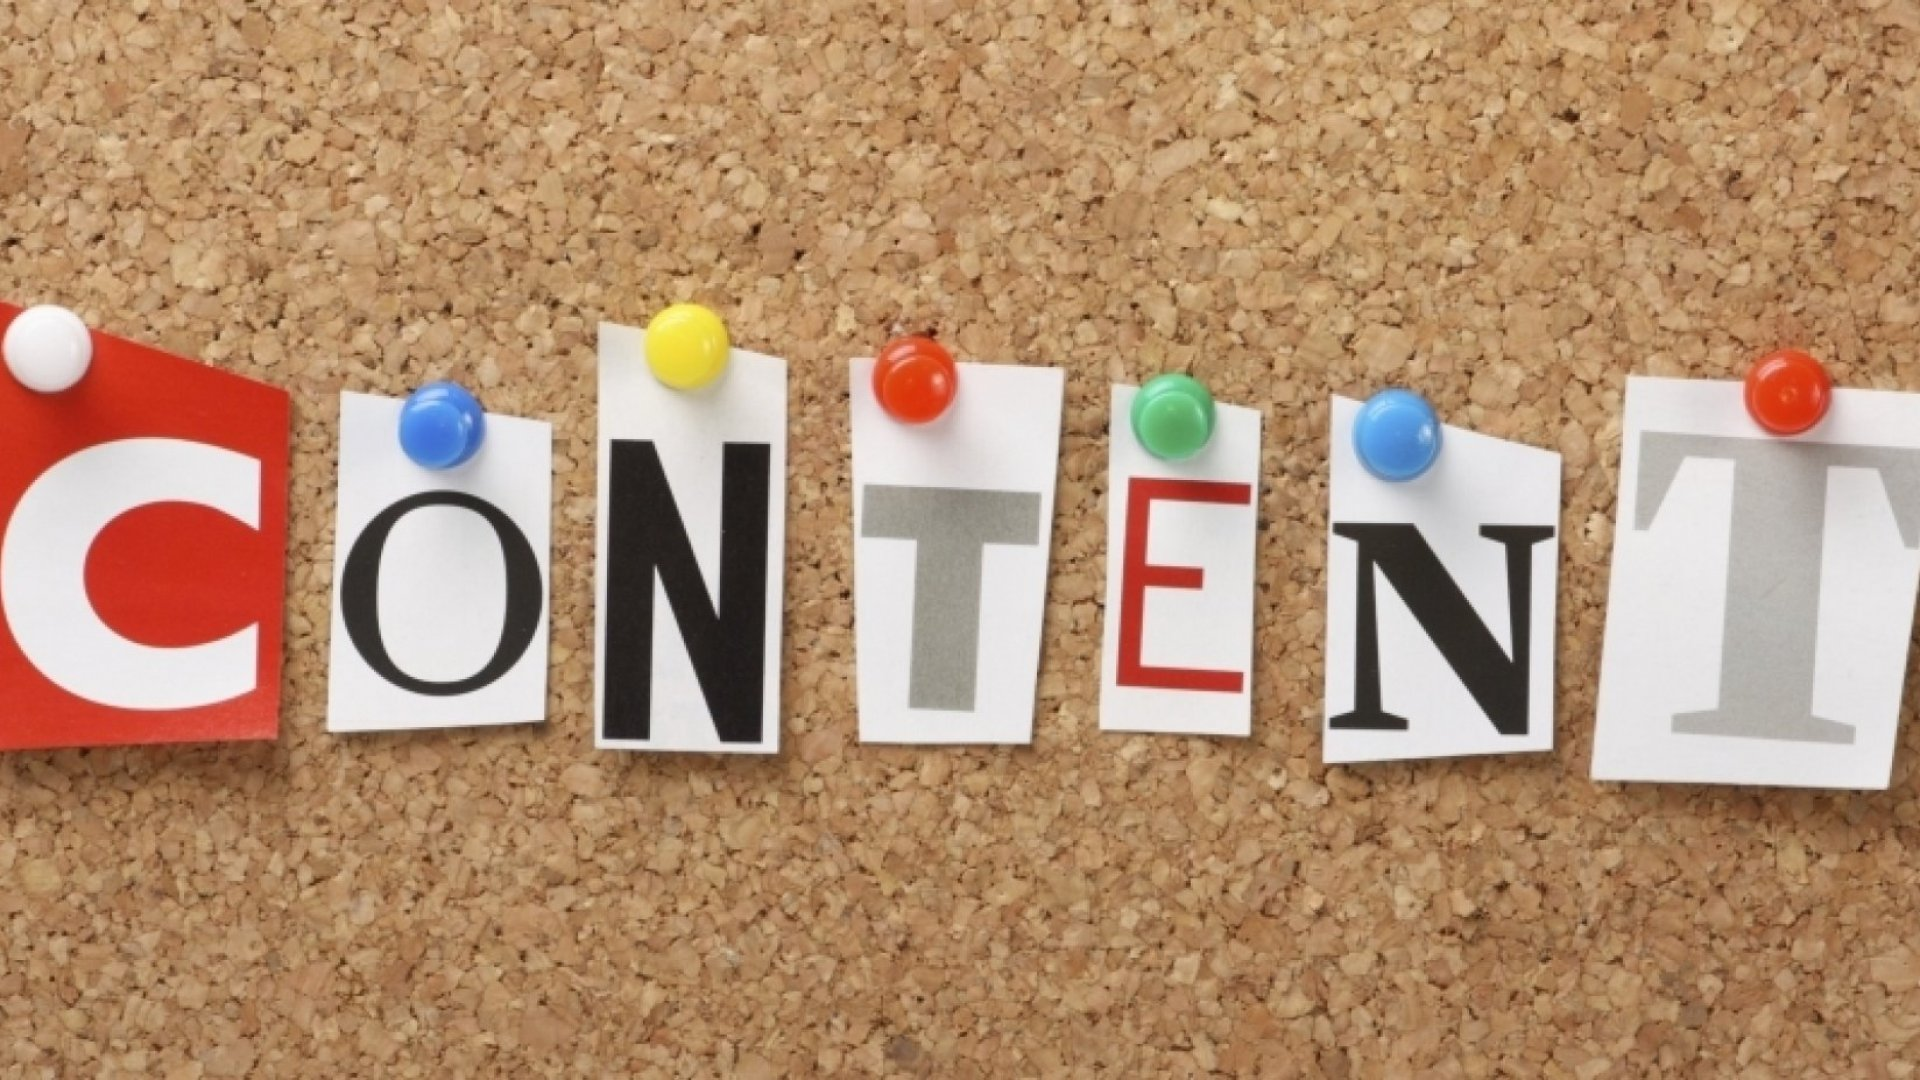 Tips to Write a Great Content Marketing Article